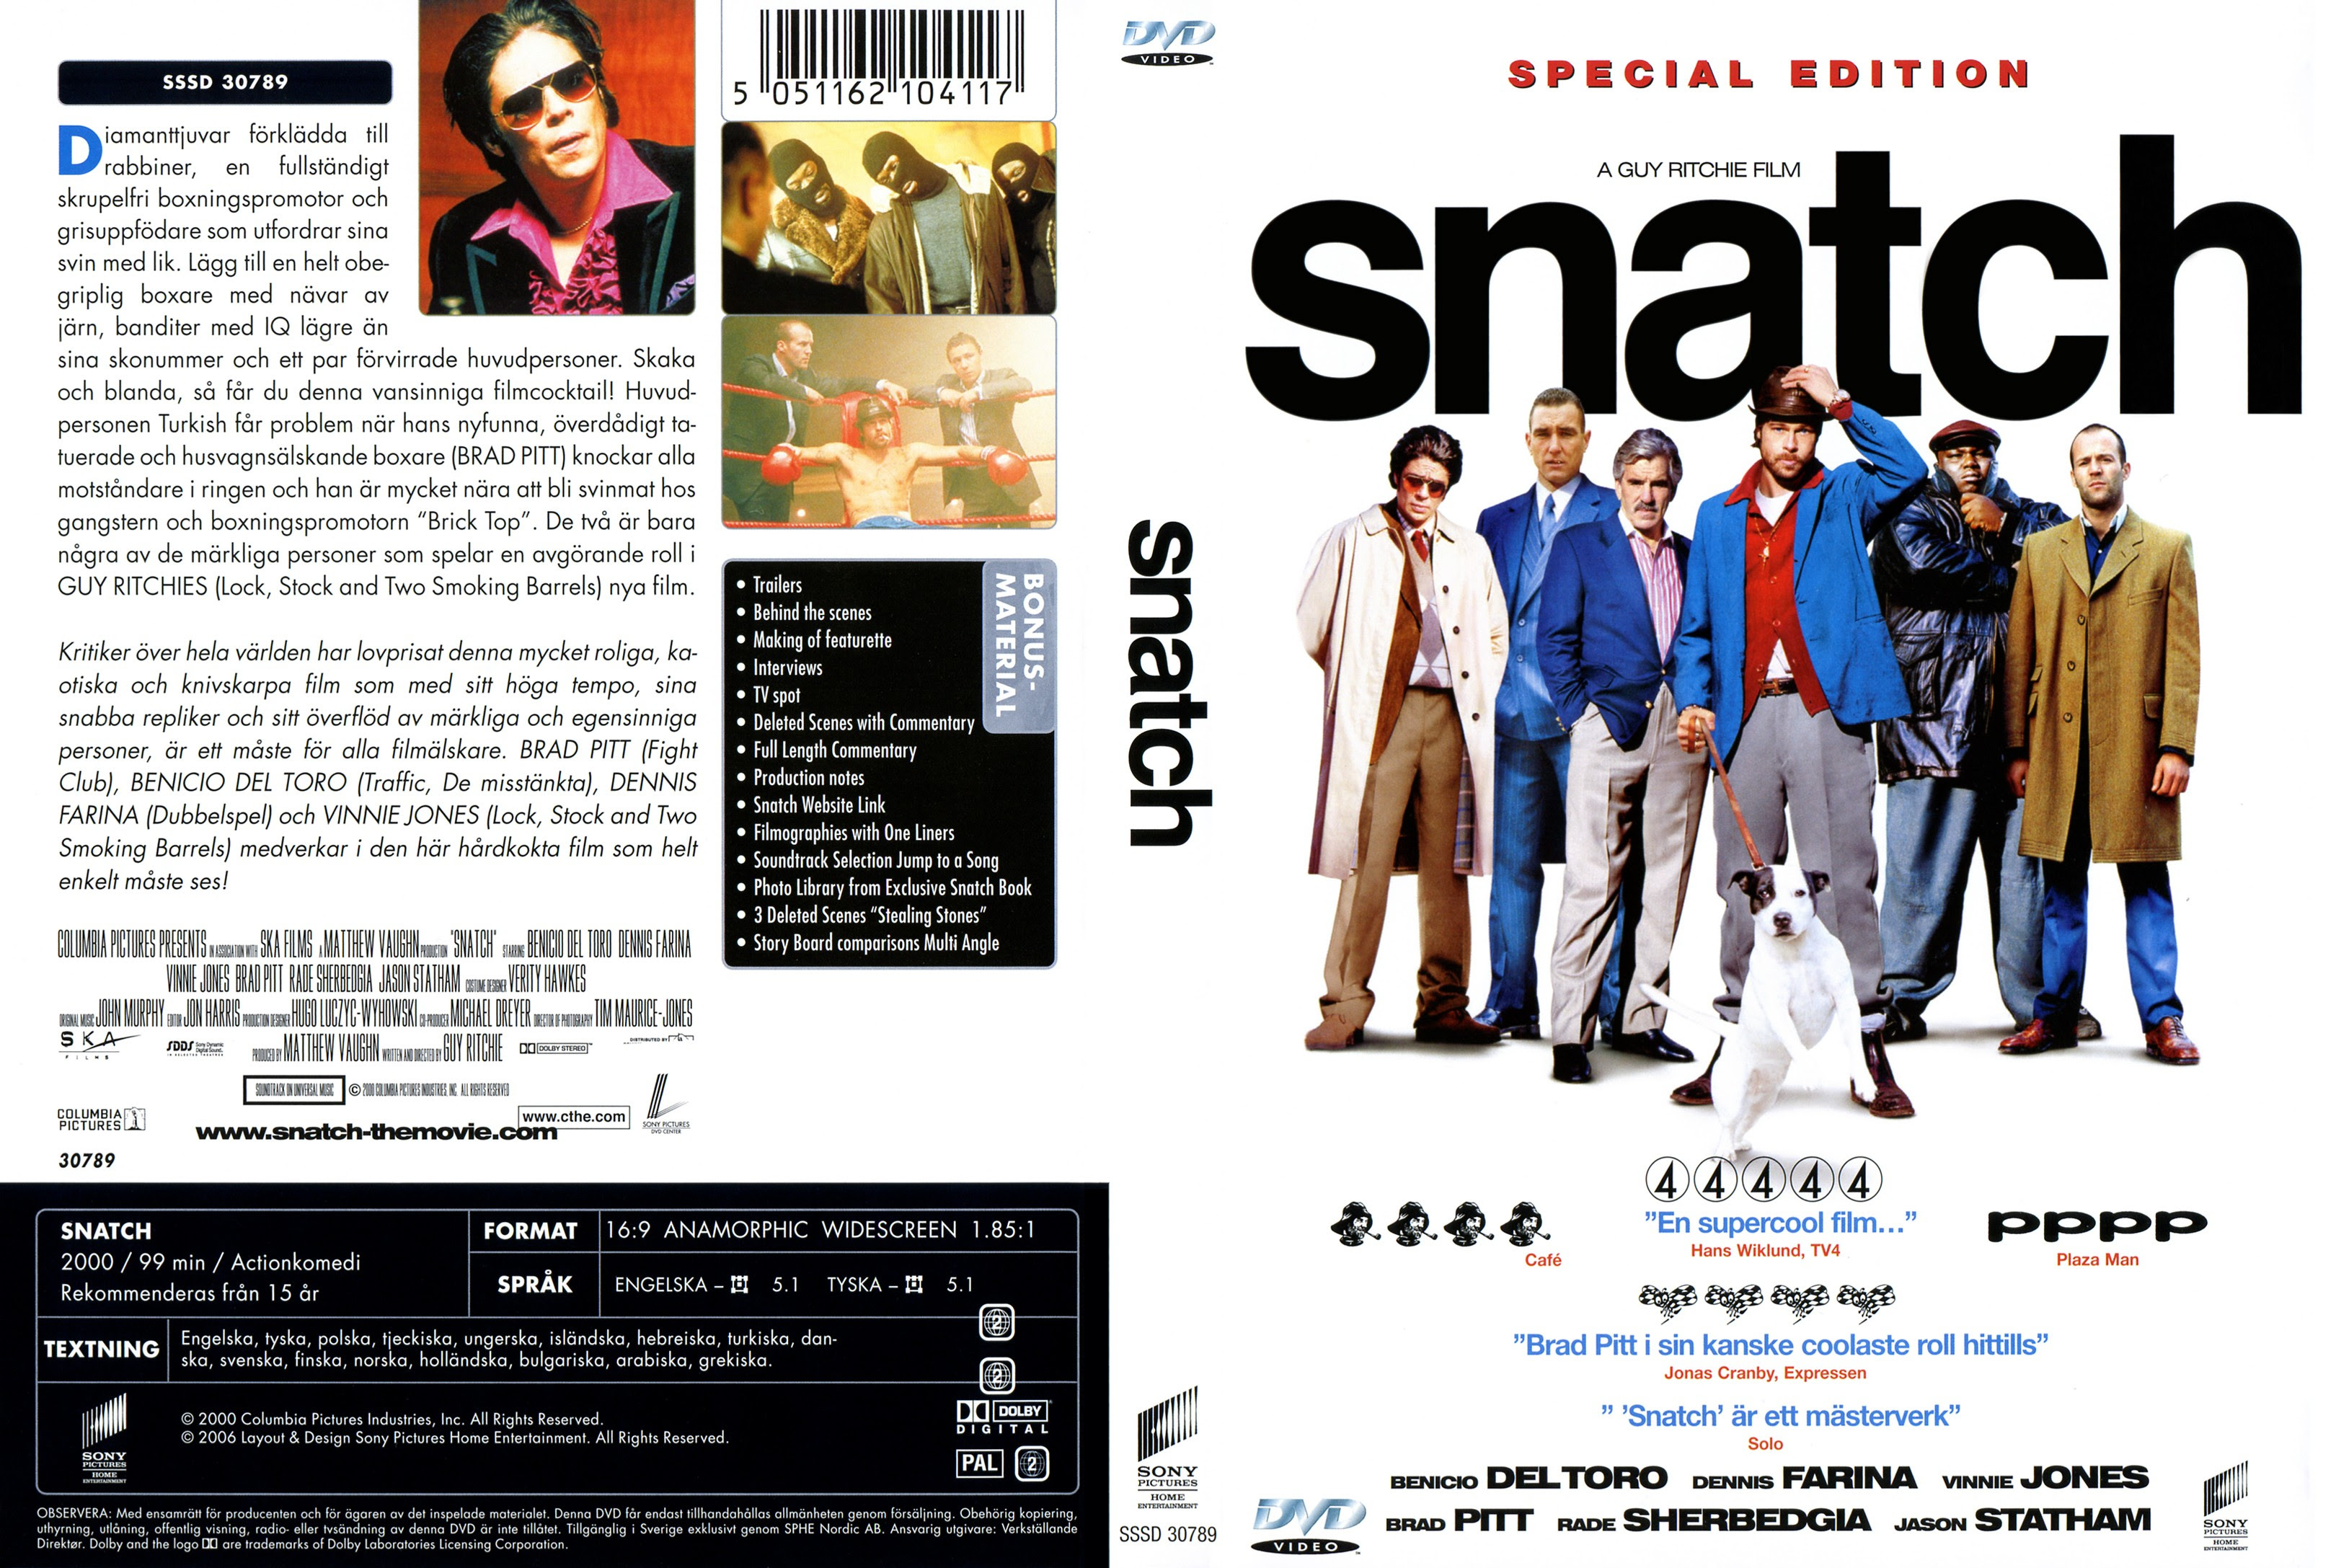 Snatch: Porcos E Diamantes - Torrent BluRay Rip 720p e 1080p / Dublado (2000)